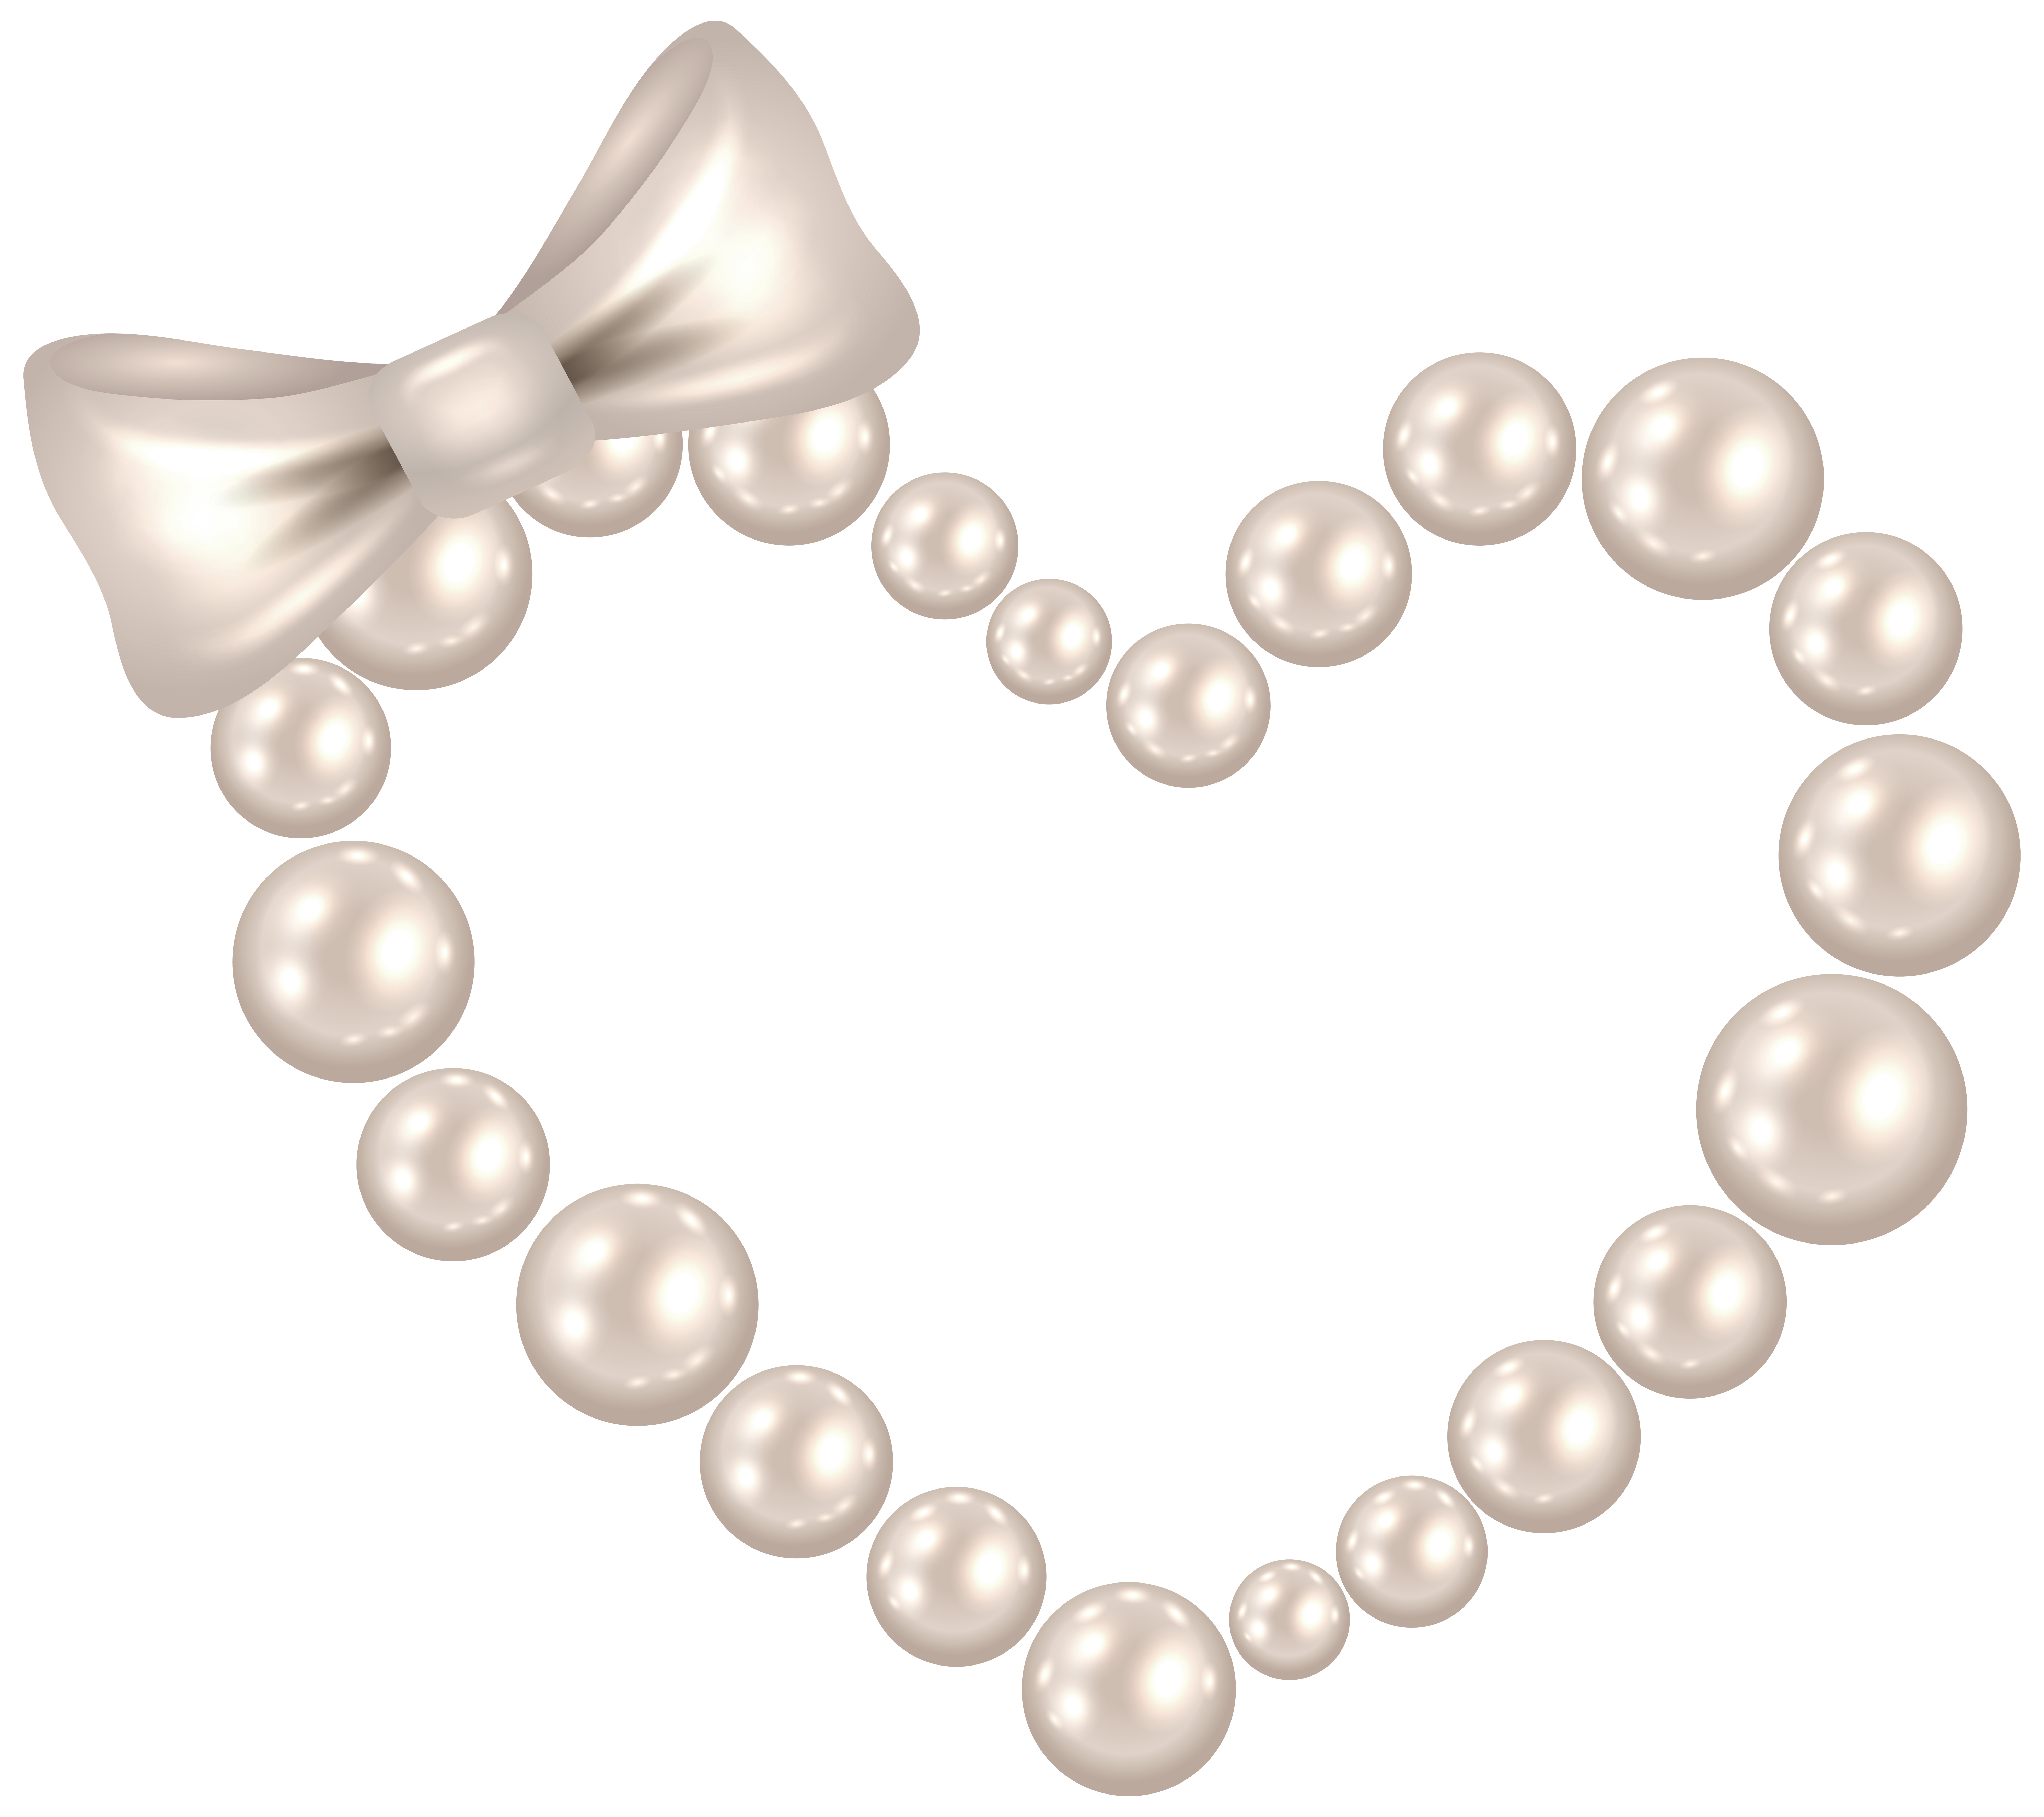 Pearl with bow transparent. Necklace clipart heart shaped locket